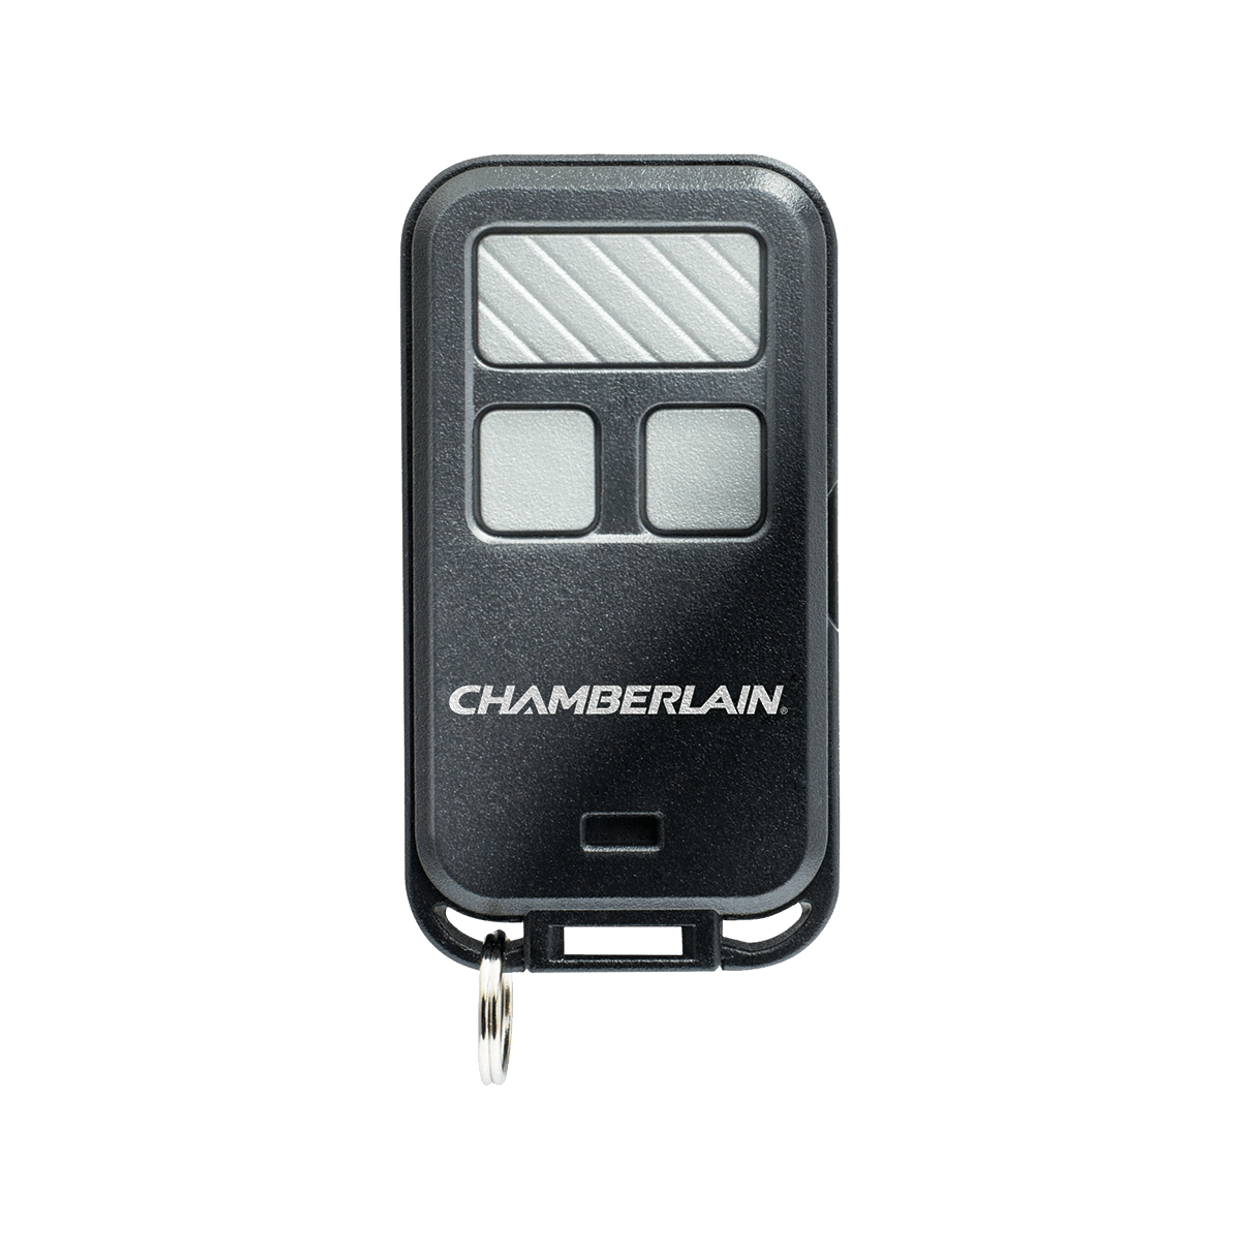 Garage Door Opener Remote Set Up G956ev P2 Keychain Garage Door Remote Chamberlain